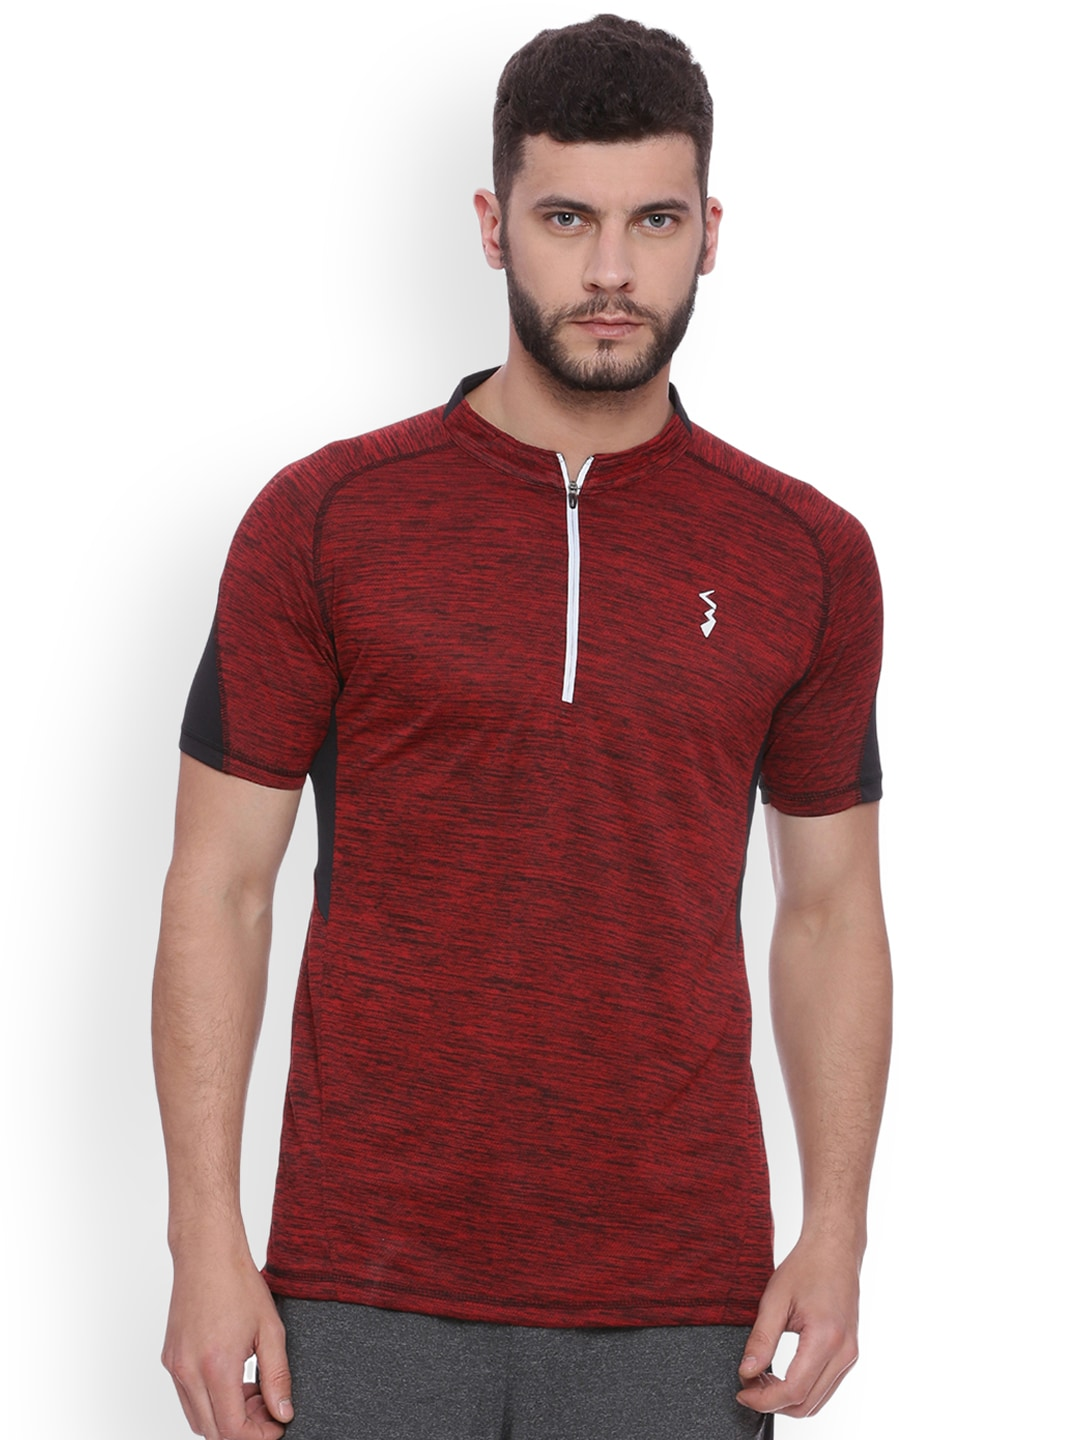 f4ab45d8a Men T-shirts - Buy T-shirt for Men Online in India | Myntra